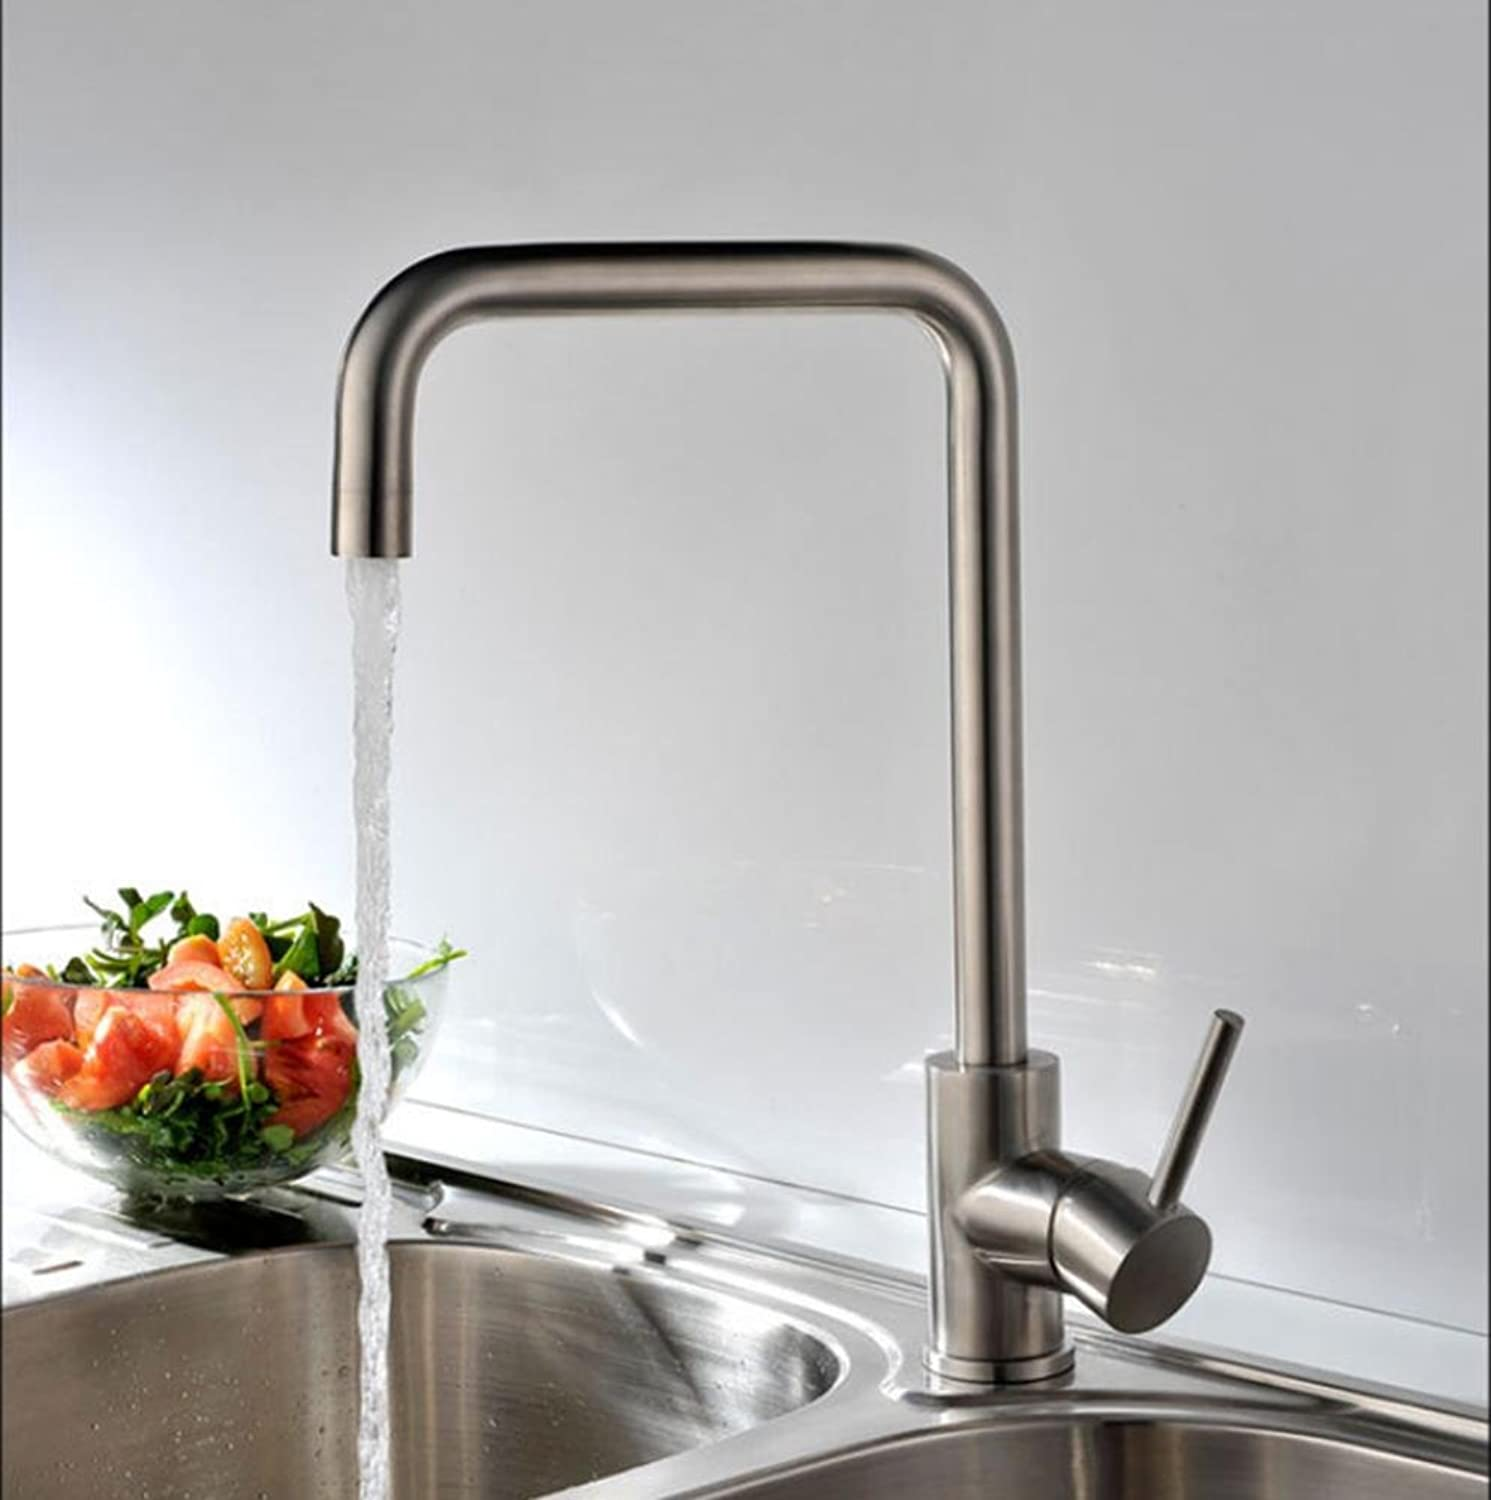 ZHIYUAN Fashion high-end ware Centerset Antique Hot and cold Single hole Stainless steel Faucets personality Kitchen sink Mixing faucets